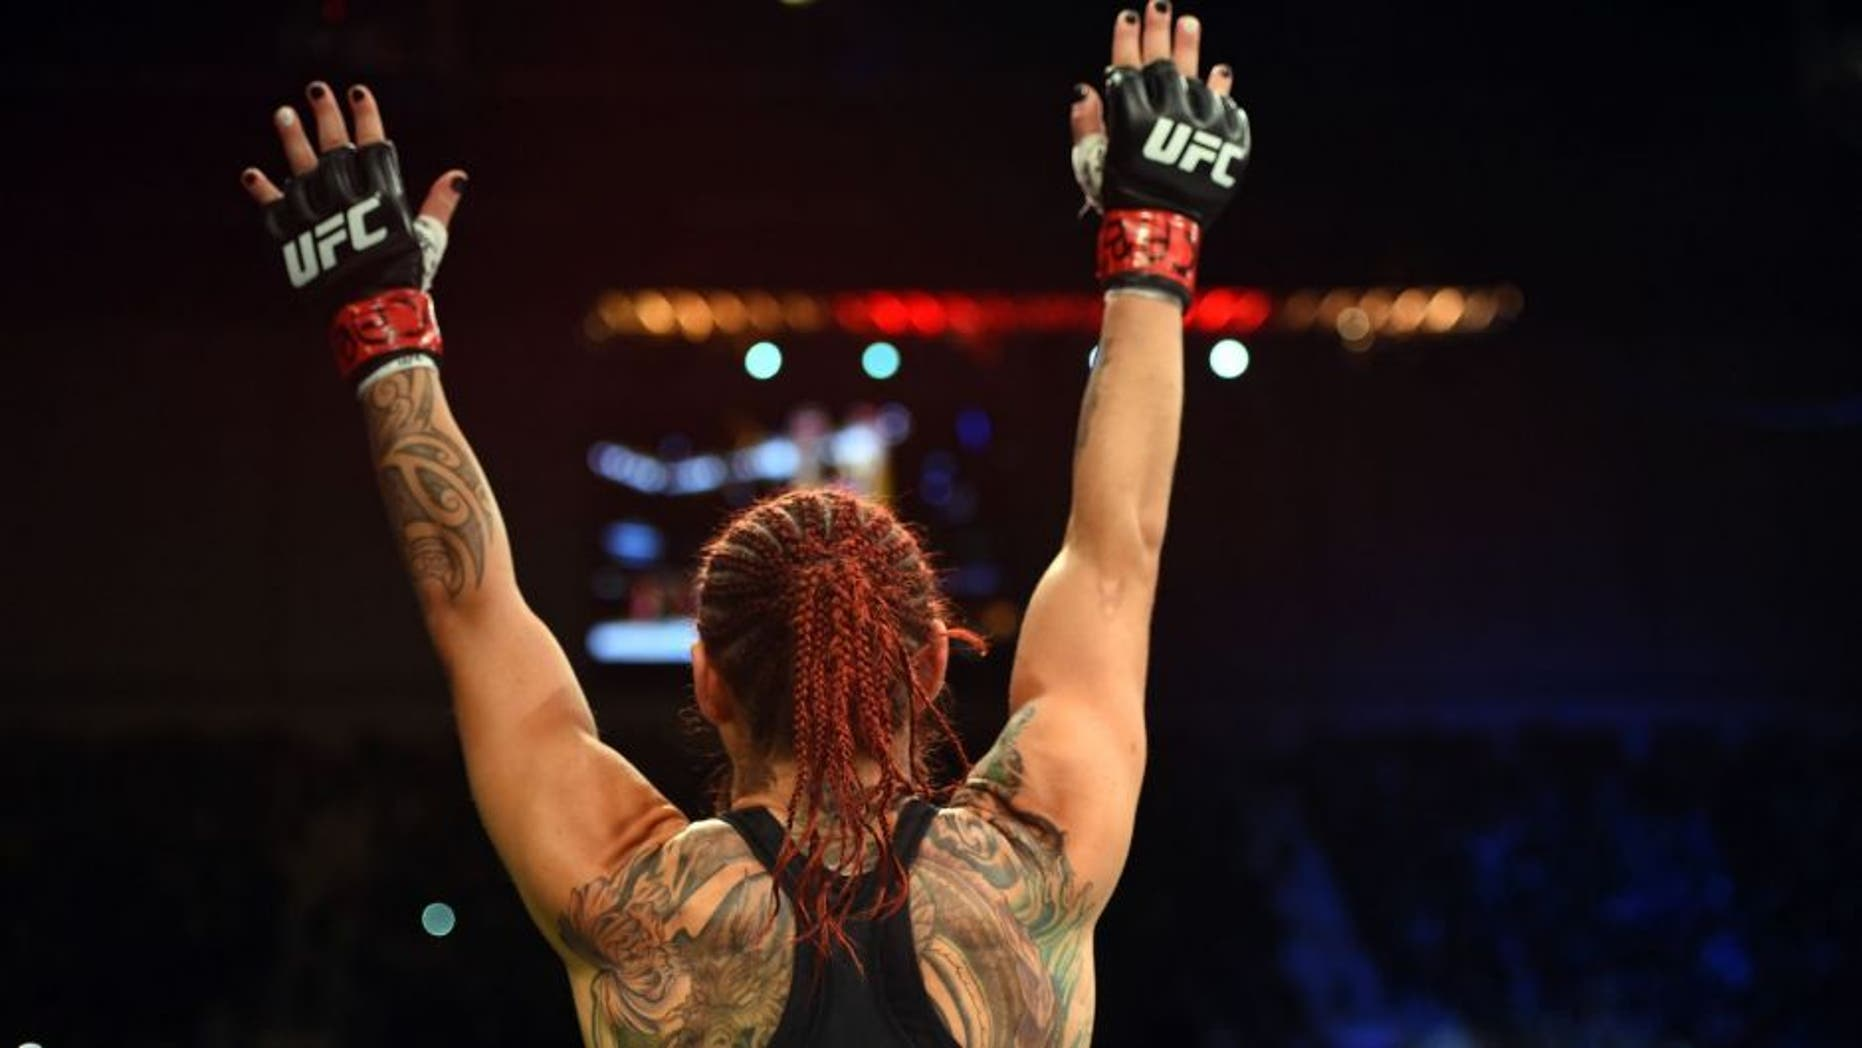 CURITIBA, BRAZIL - MAY 14: Cristiane 'Cyborg' Justino of Brazil celebrates after defeating Leslie Smith in their women's catchweight bout during the UFC 198 event at Arena da Baixada stadium on May 14, 2016 in Curitiba, Parana, Brazil. (Photo by Josh Hedges/Zuffa LLC/Zuffa LLC via Getty Images)